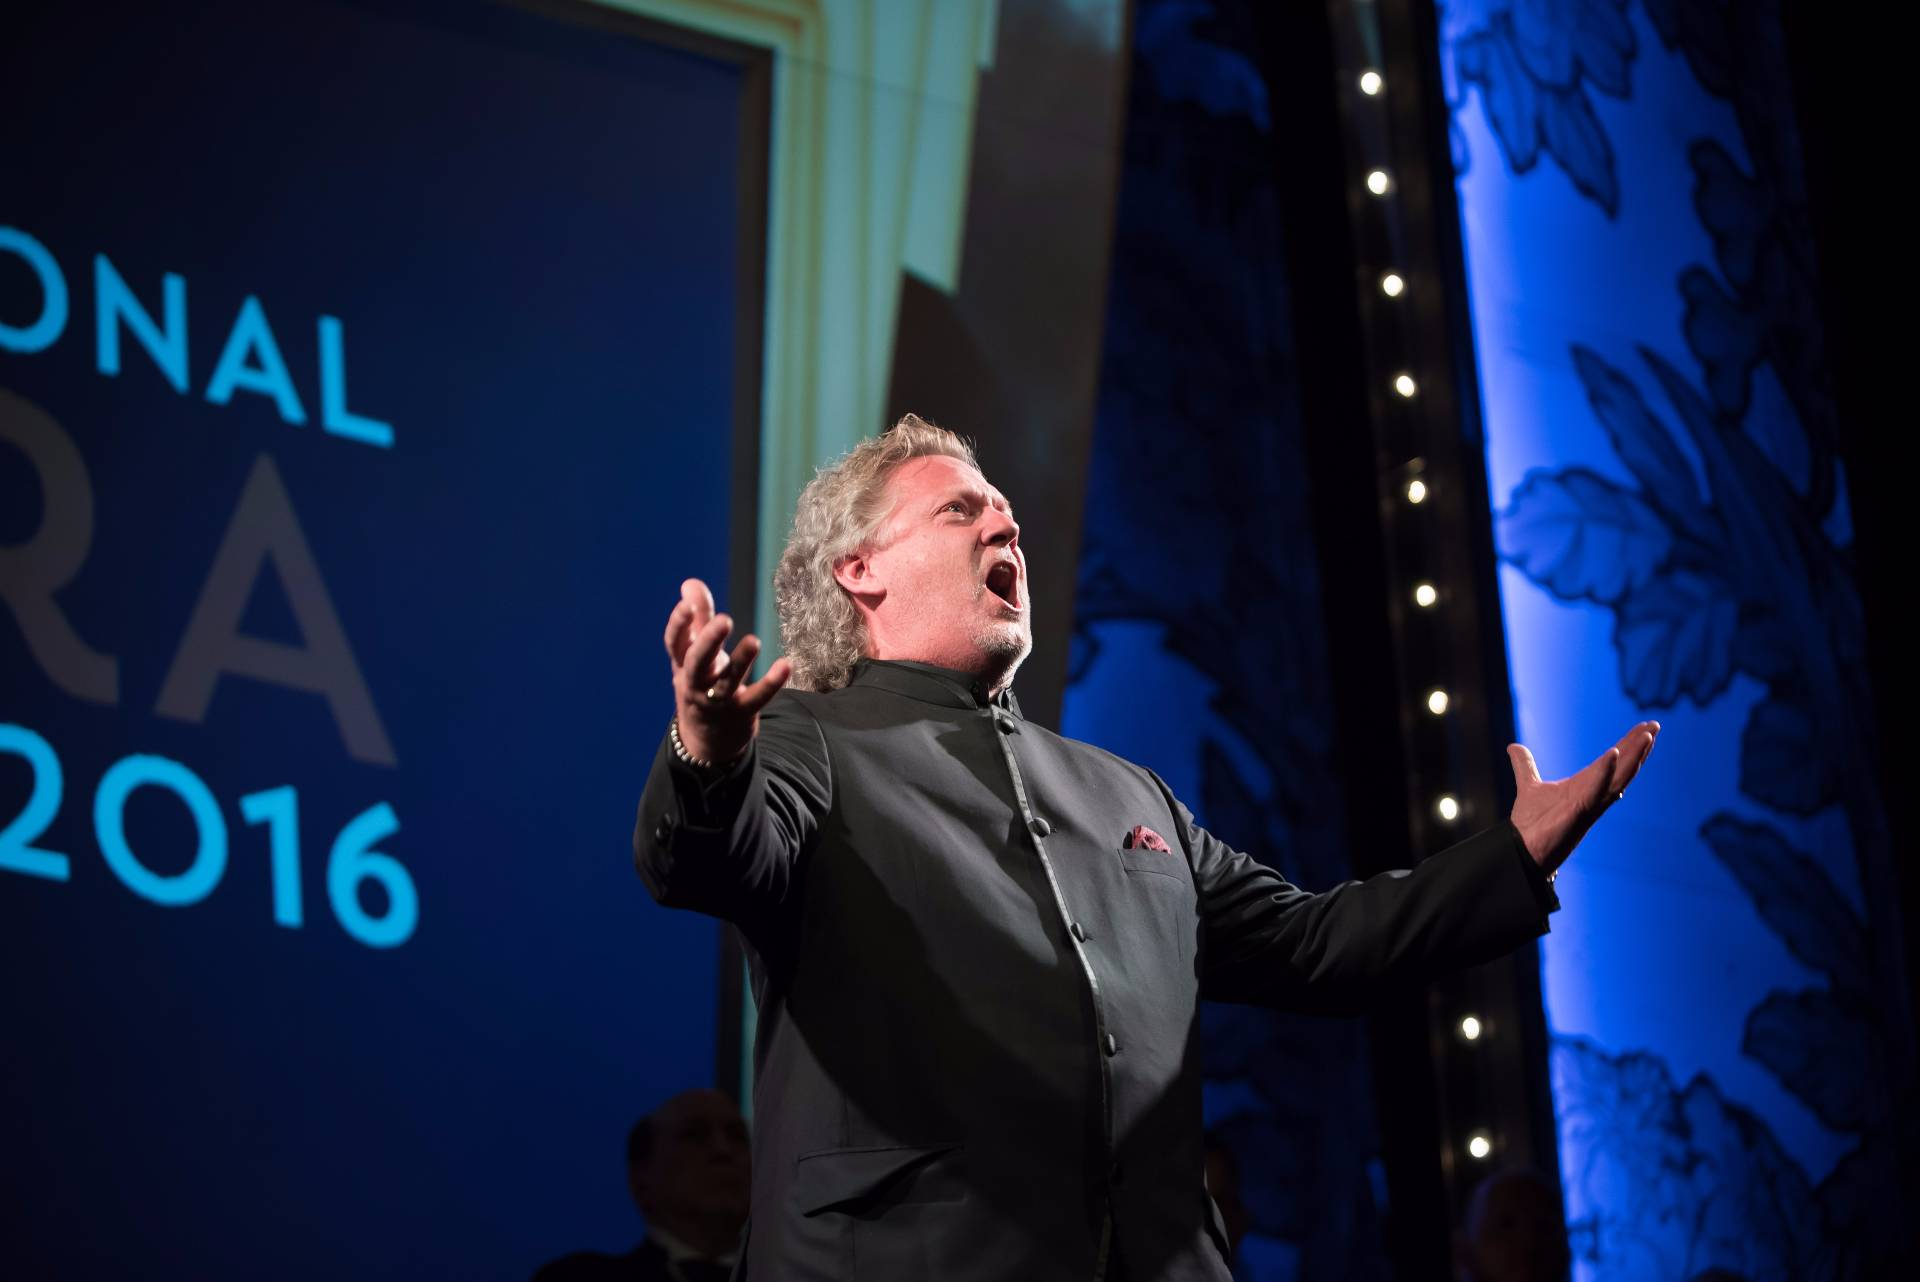 Gregory Kunde performs at International Opera Awards 2016